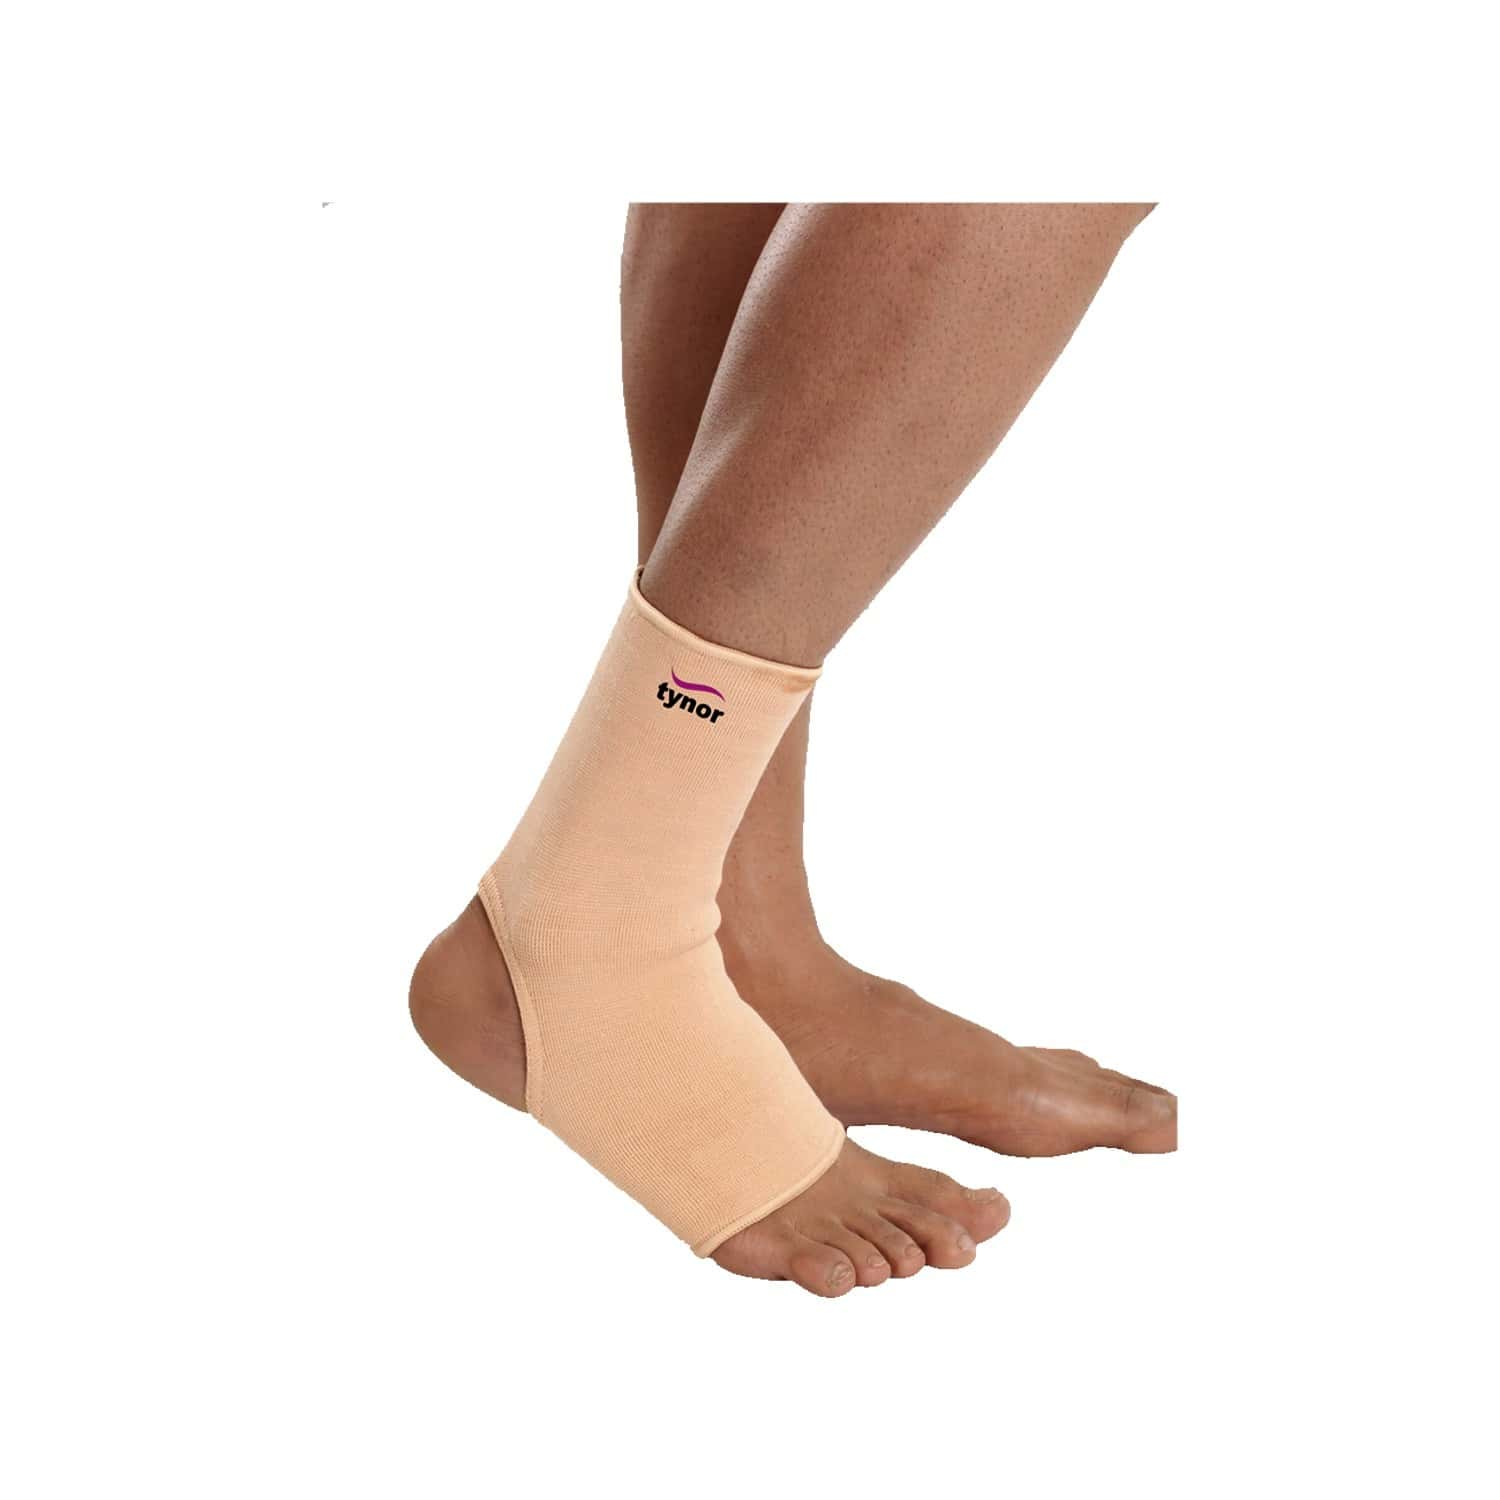 Tynor Anklet ( Compression,support, Pain Relief) - Small